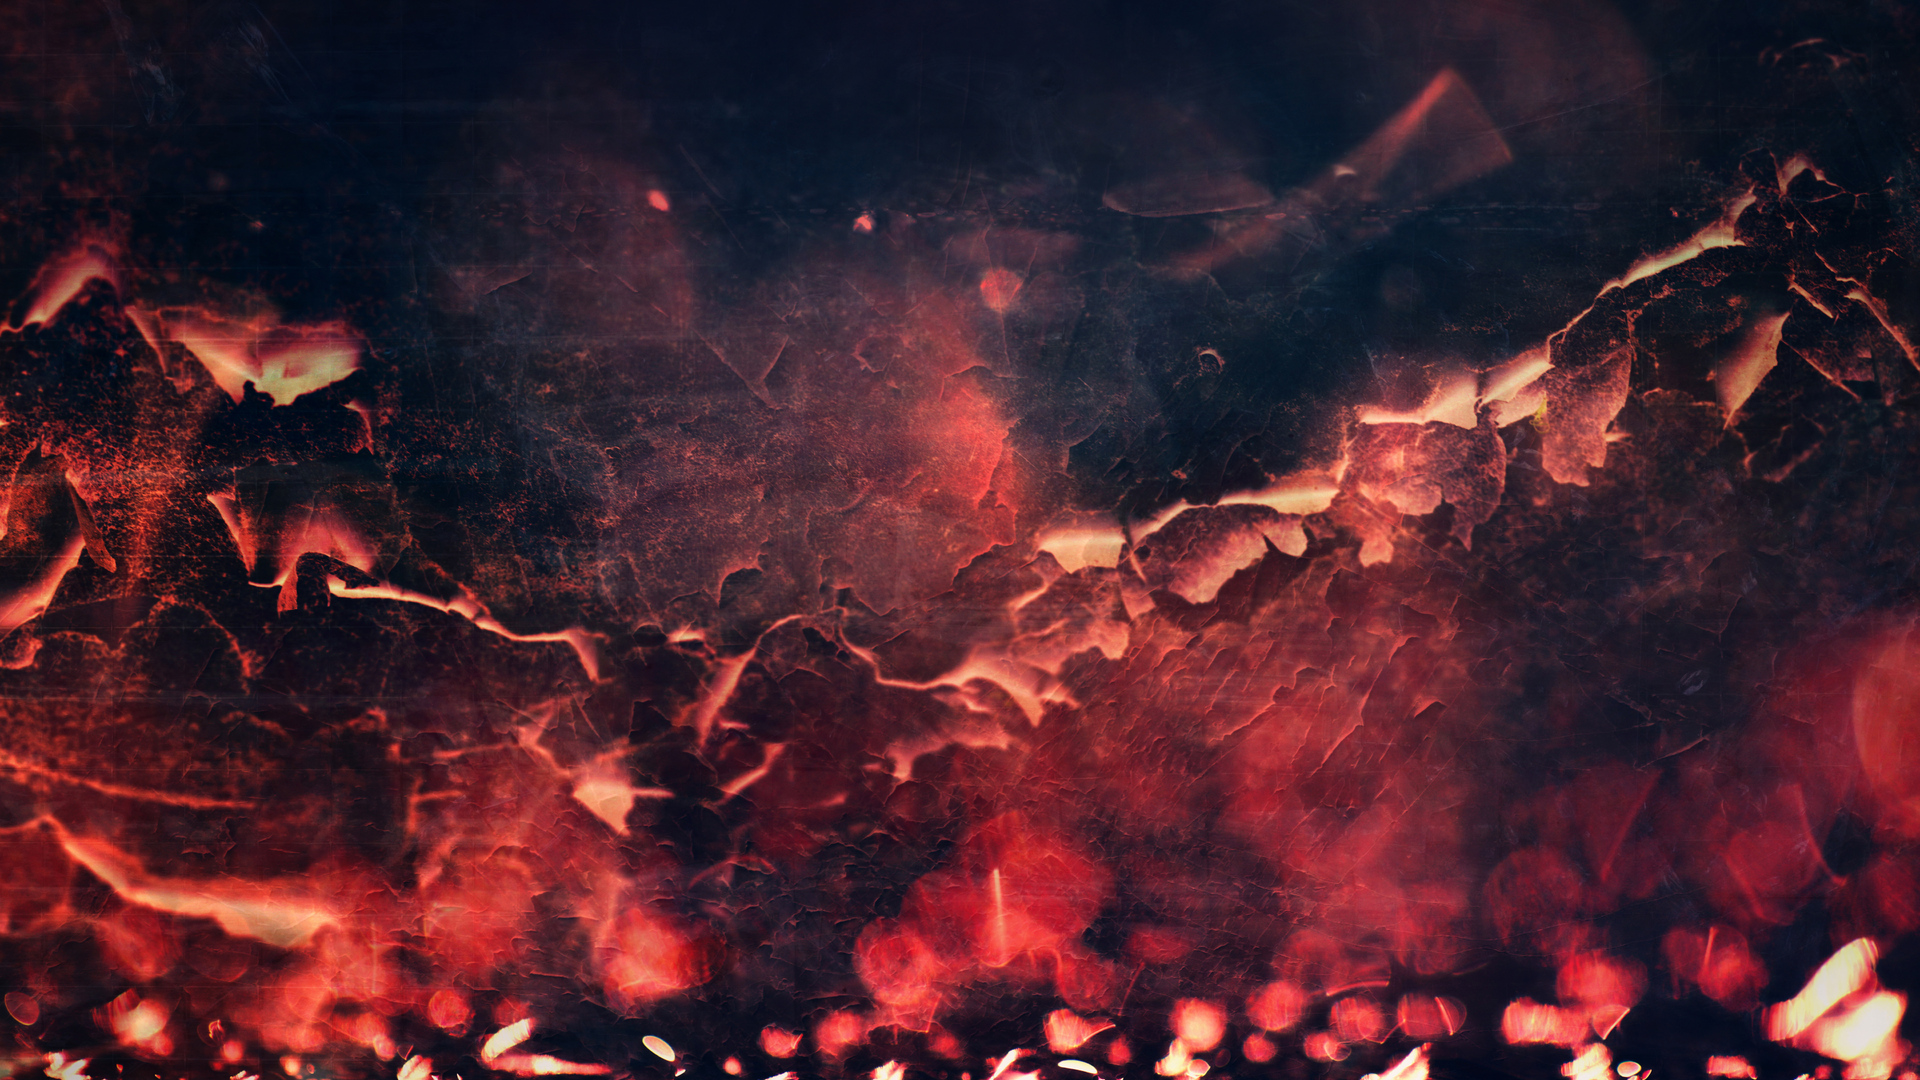 1920x1080 Red Abstract Fire Texture 5k Laptop Full Hd 1080p Hd 4k Wallpapers Images Backgrounds Photos And Pictures